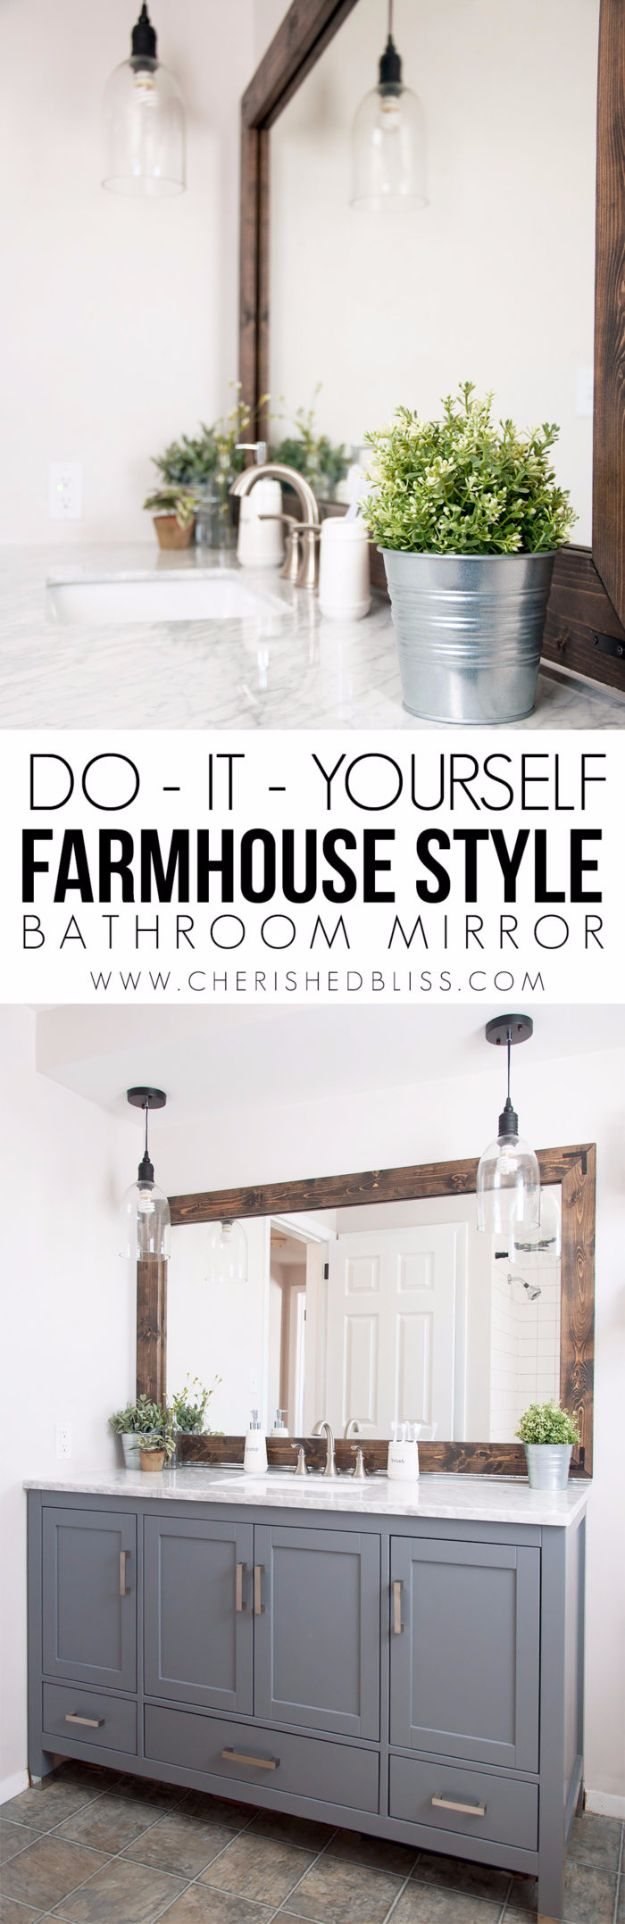 41 more diy farmhouse style decor ideas farmhouse bathroom mirror tutorial creative rustic ideas